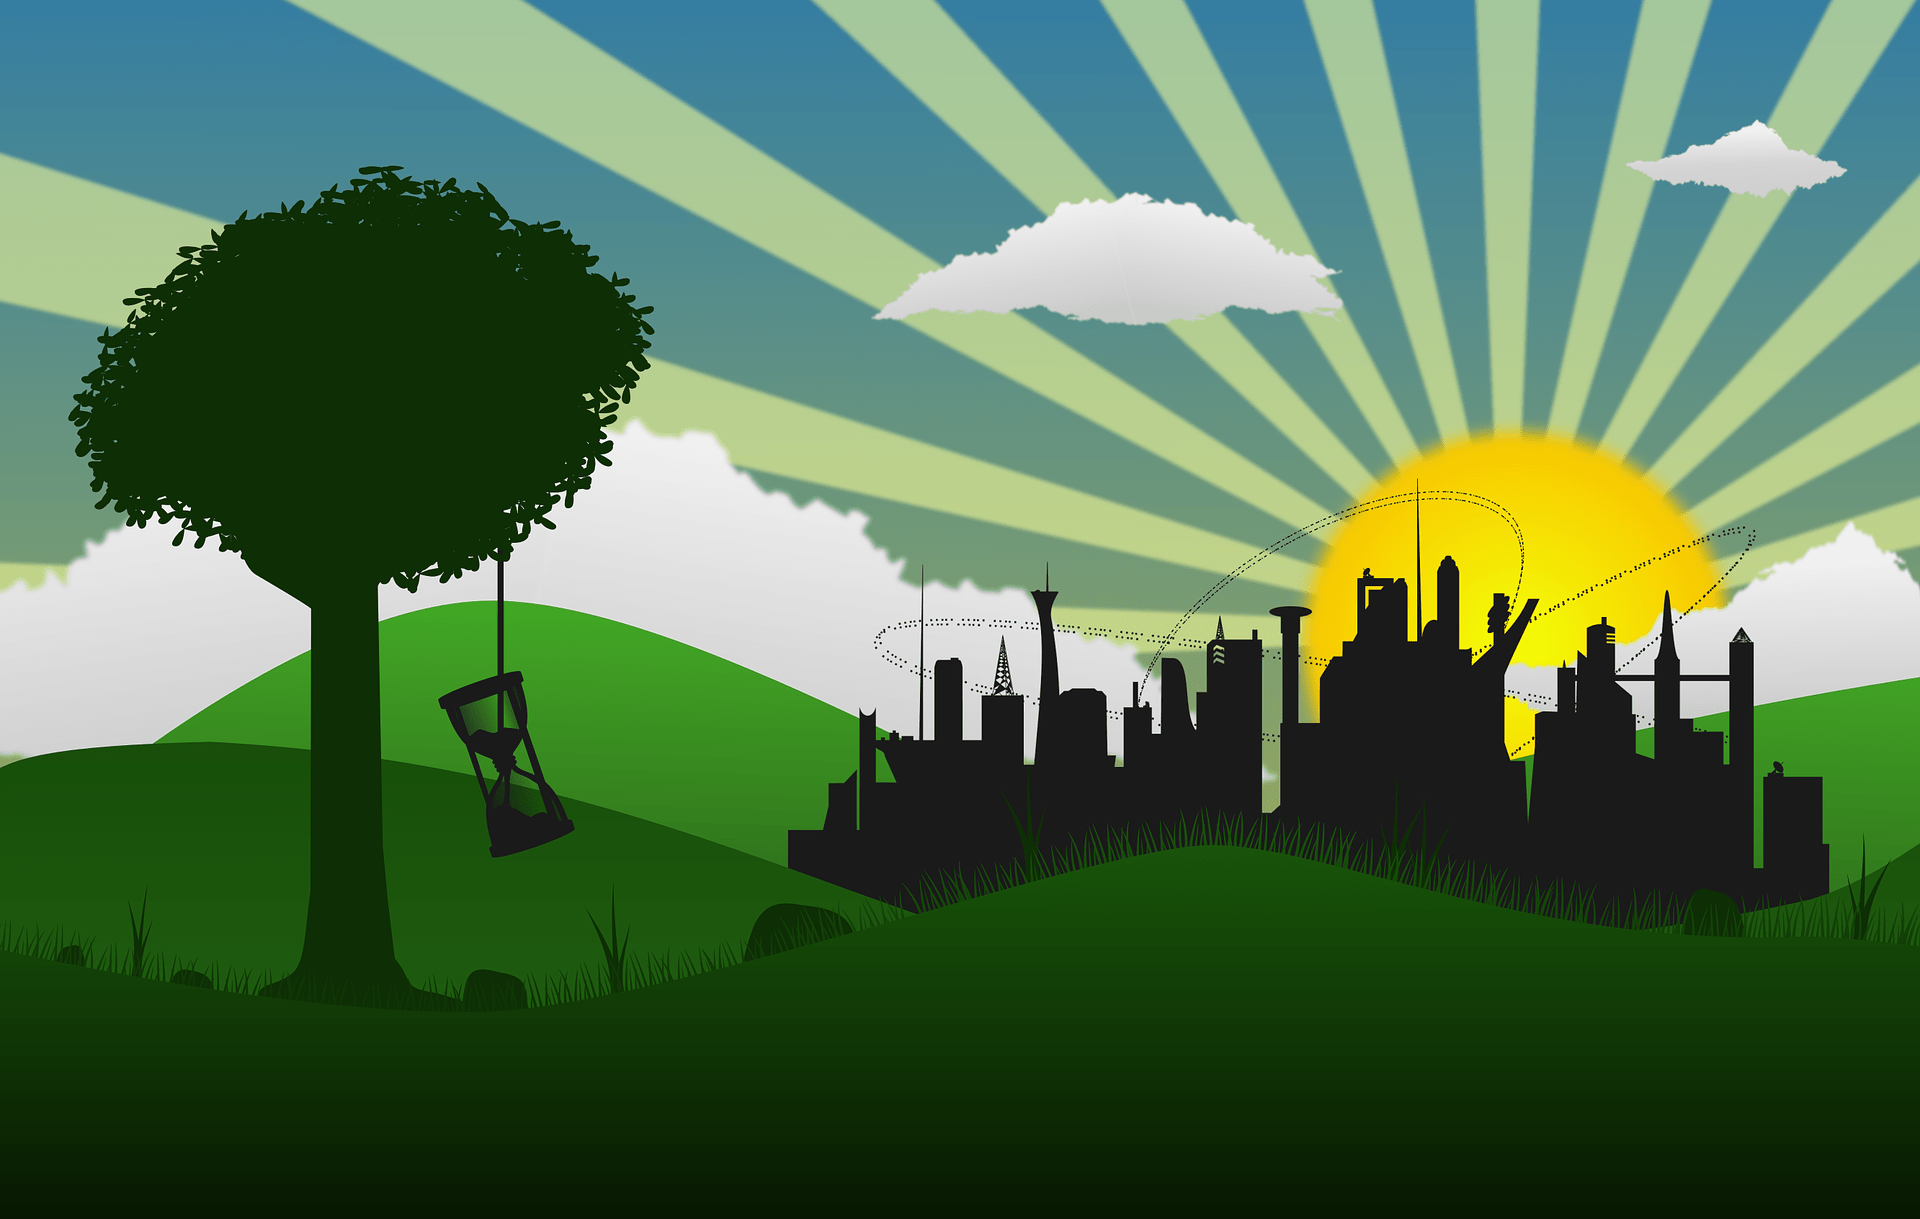 Do You Have a Supply Chain Green Idea, Startup or Project?